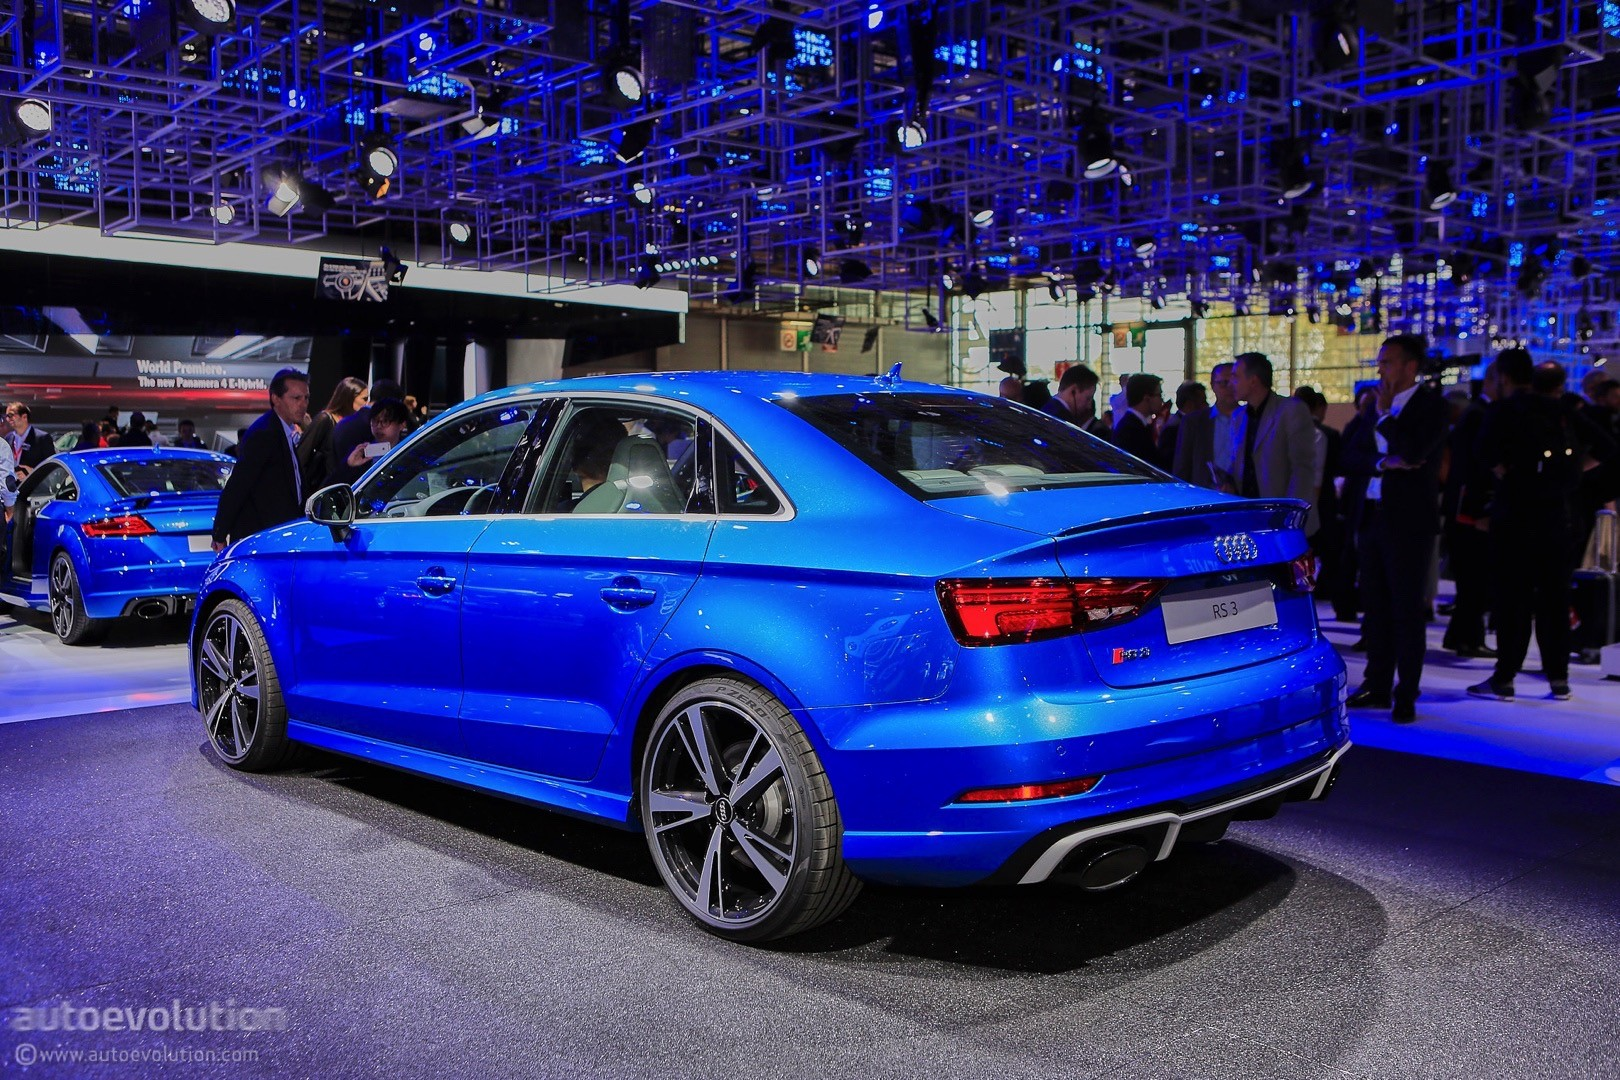 2017 Audi RS3 Sedan Drops By the 2016 Paris Motor Show - autoevolution